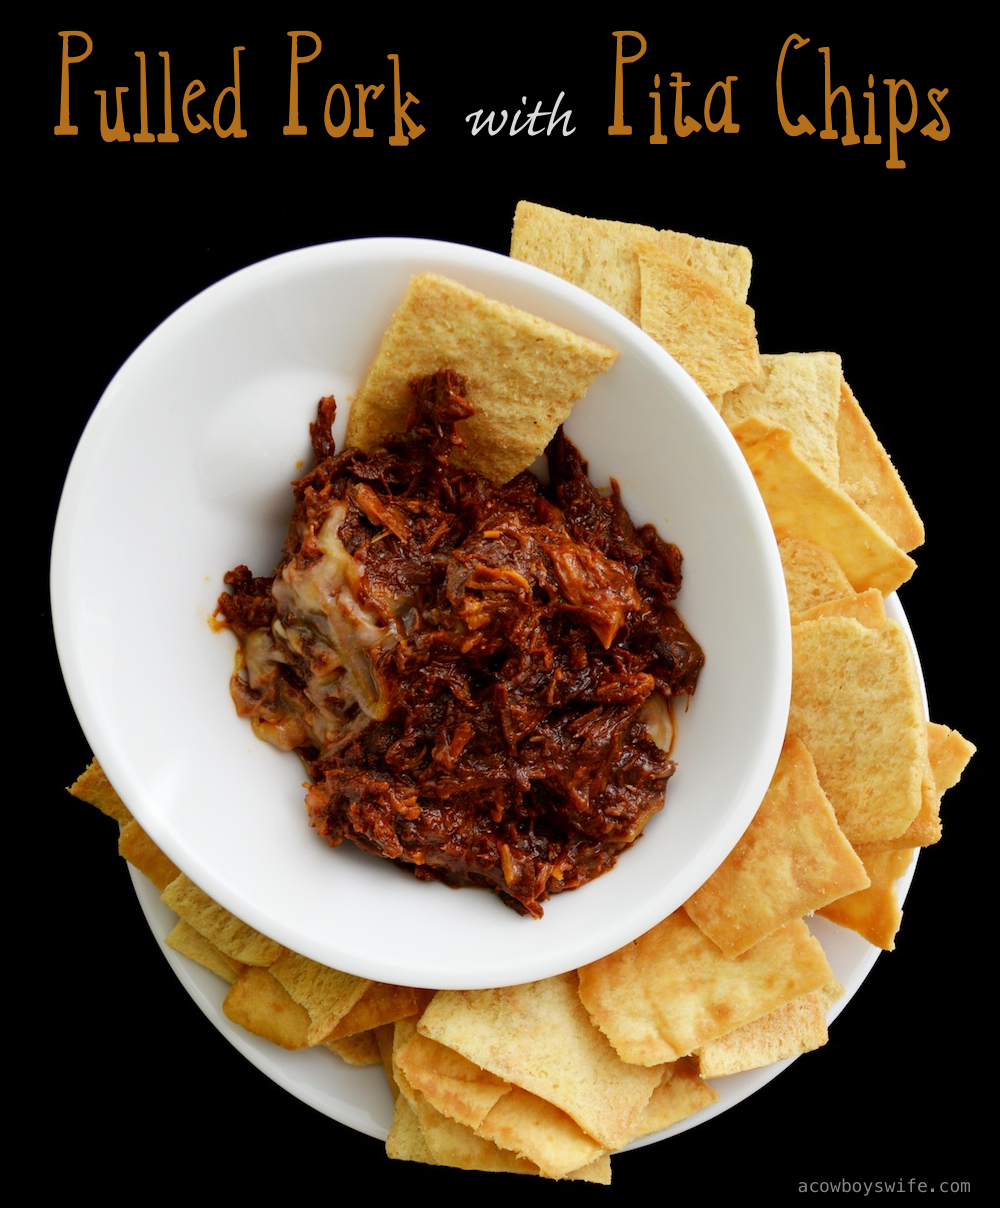 Pulled Pork with Pita Chips